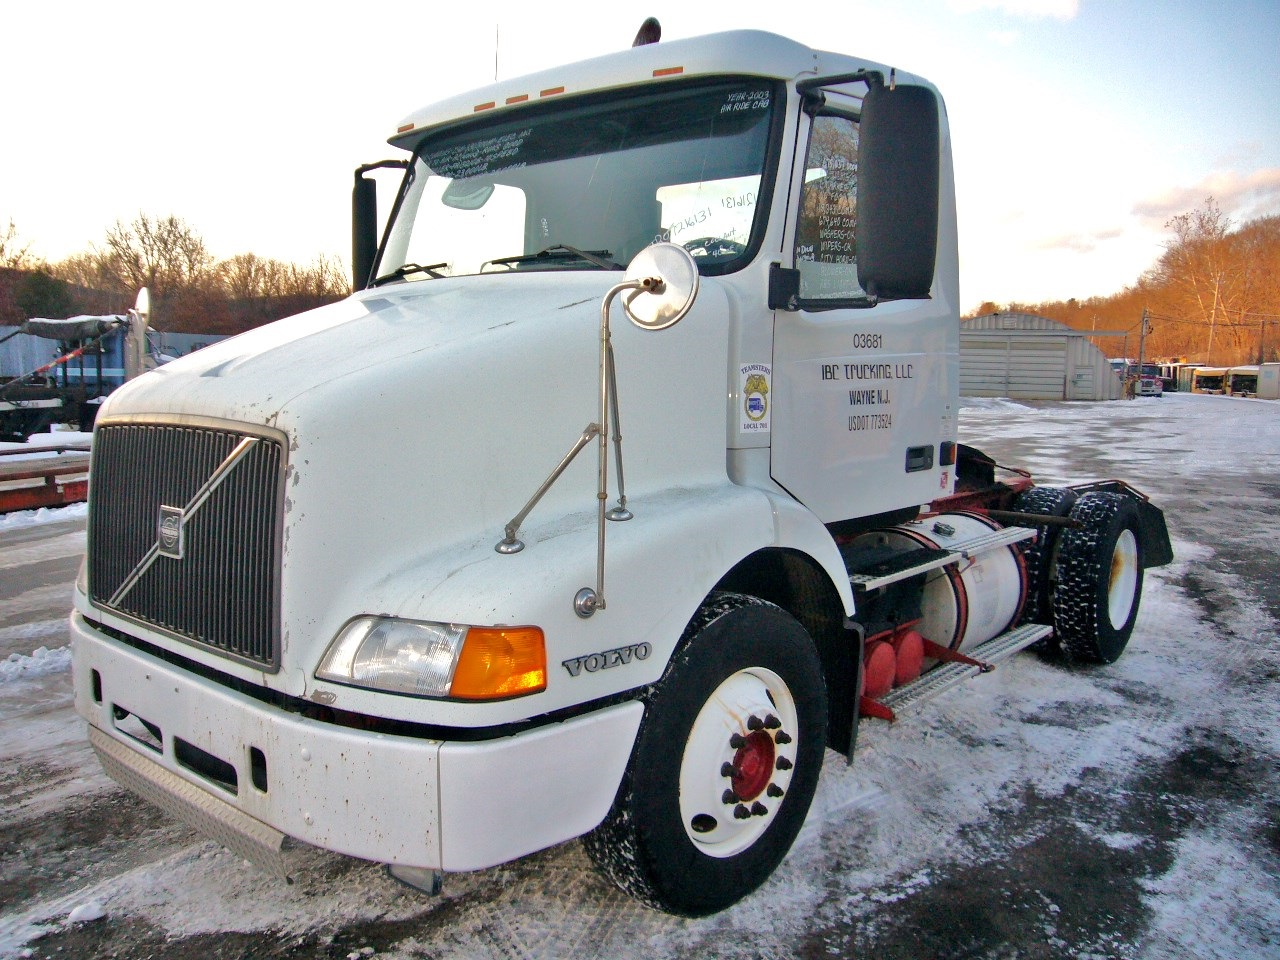 Year 2003 make volvo model type single axle day cab tractor motor cummins ism elec 330 370 hp air to air yes engine brake no